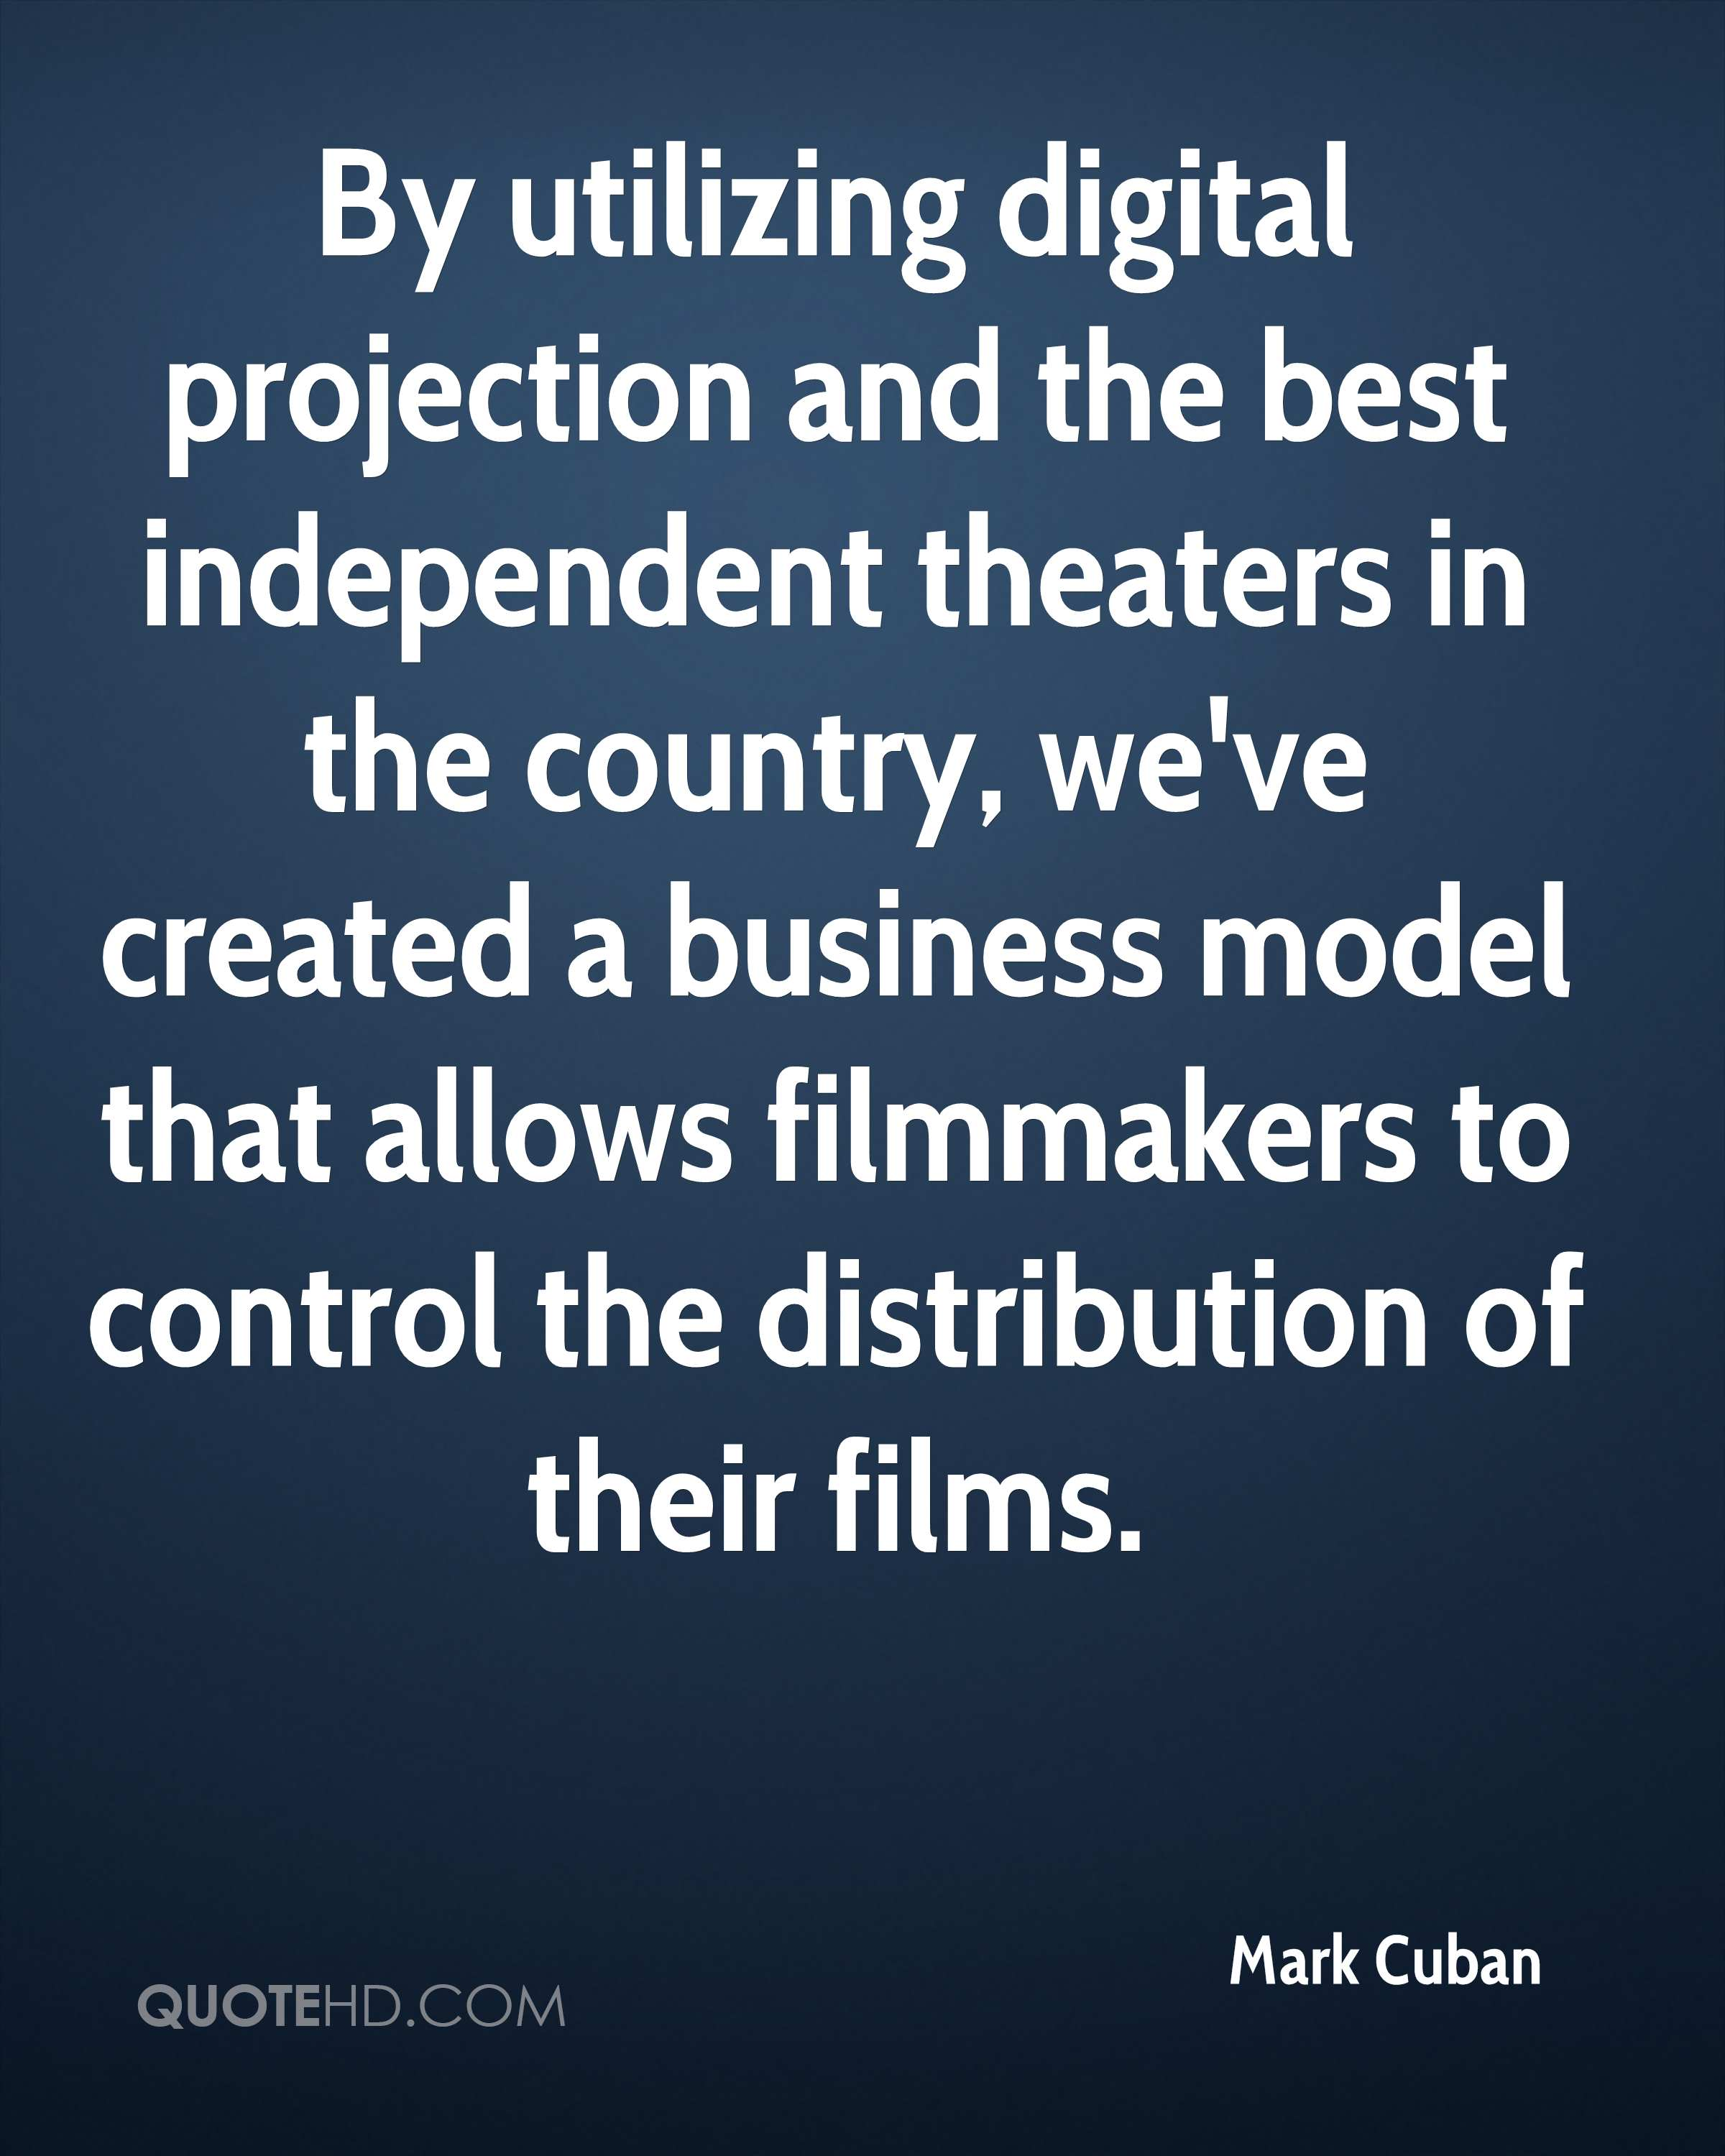 By utilizing digital projection and the best independent theaters in the country, we've created a business model that allows filmmakers to control the distribution of their films.